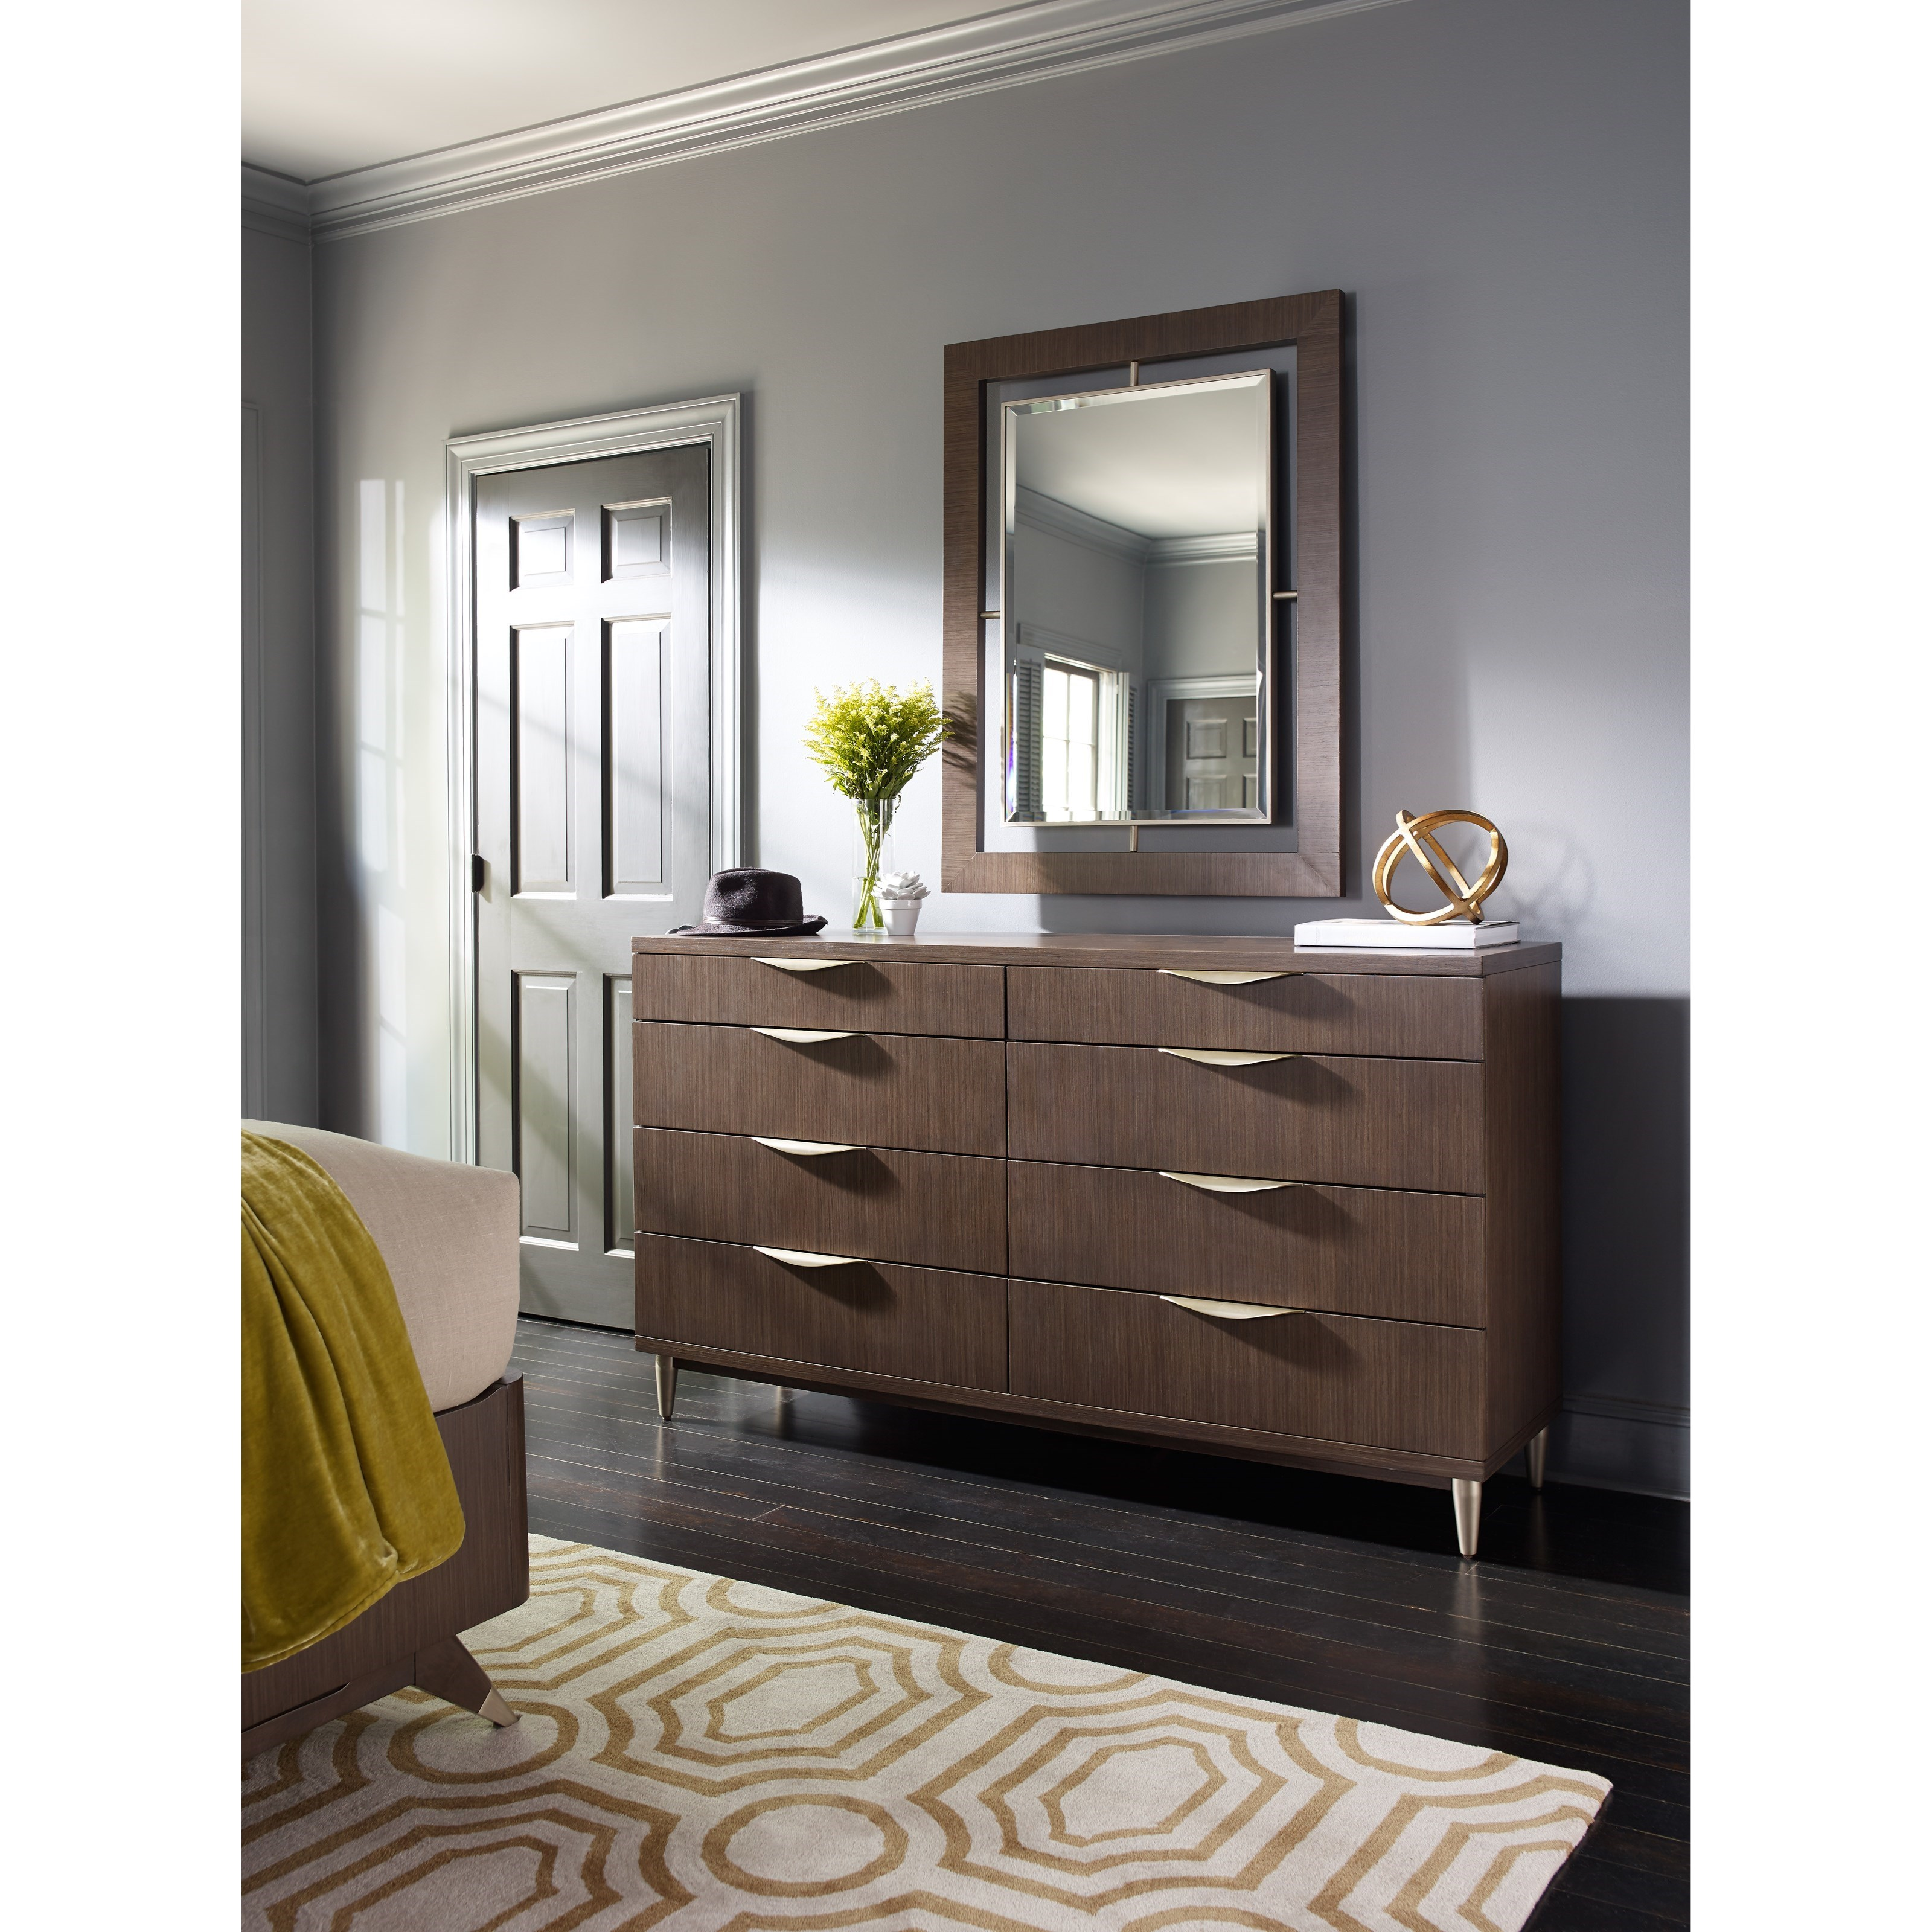 Rachael Ray Home by Legacy Classic Soho Dresser with Mirror - Item Number: 6020-1200+0800